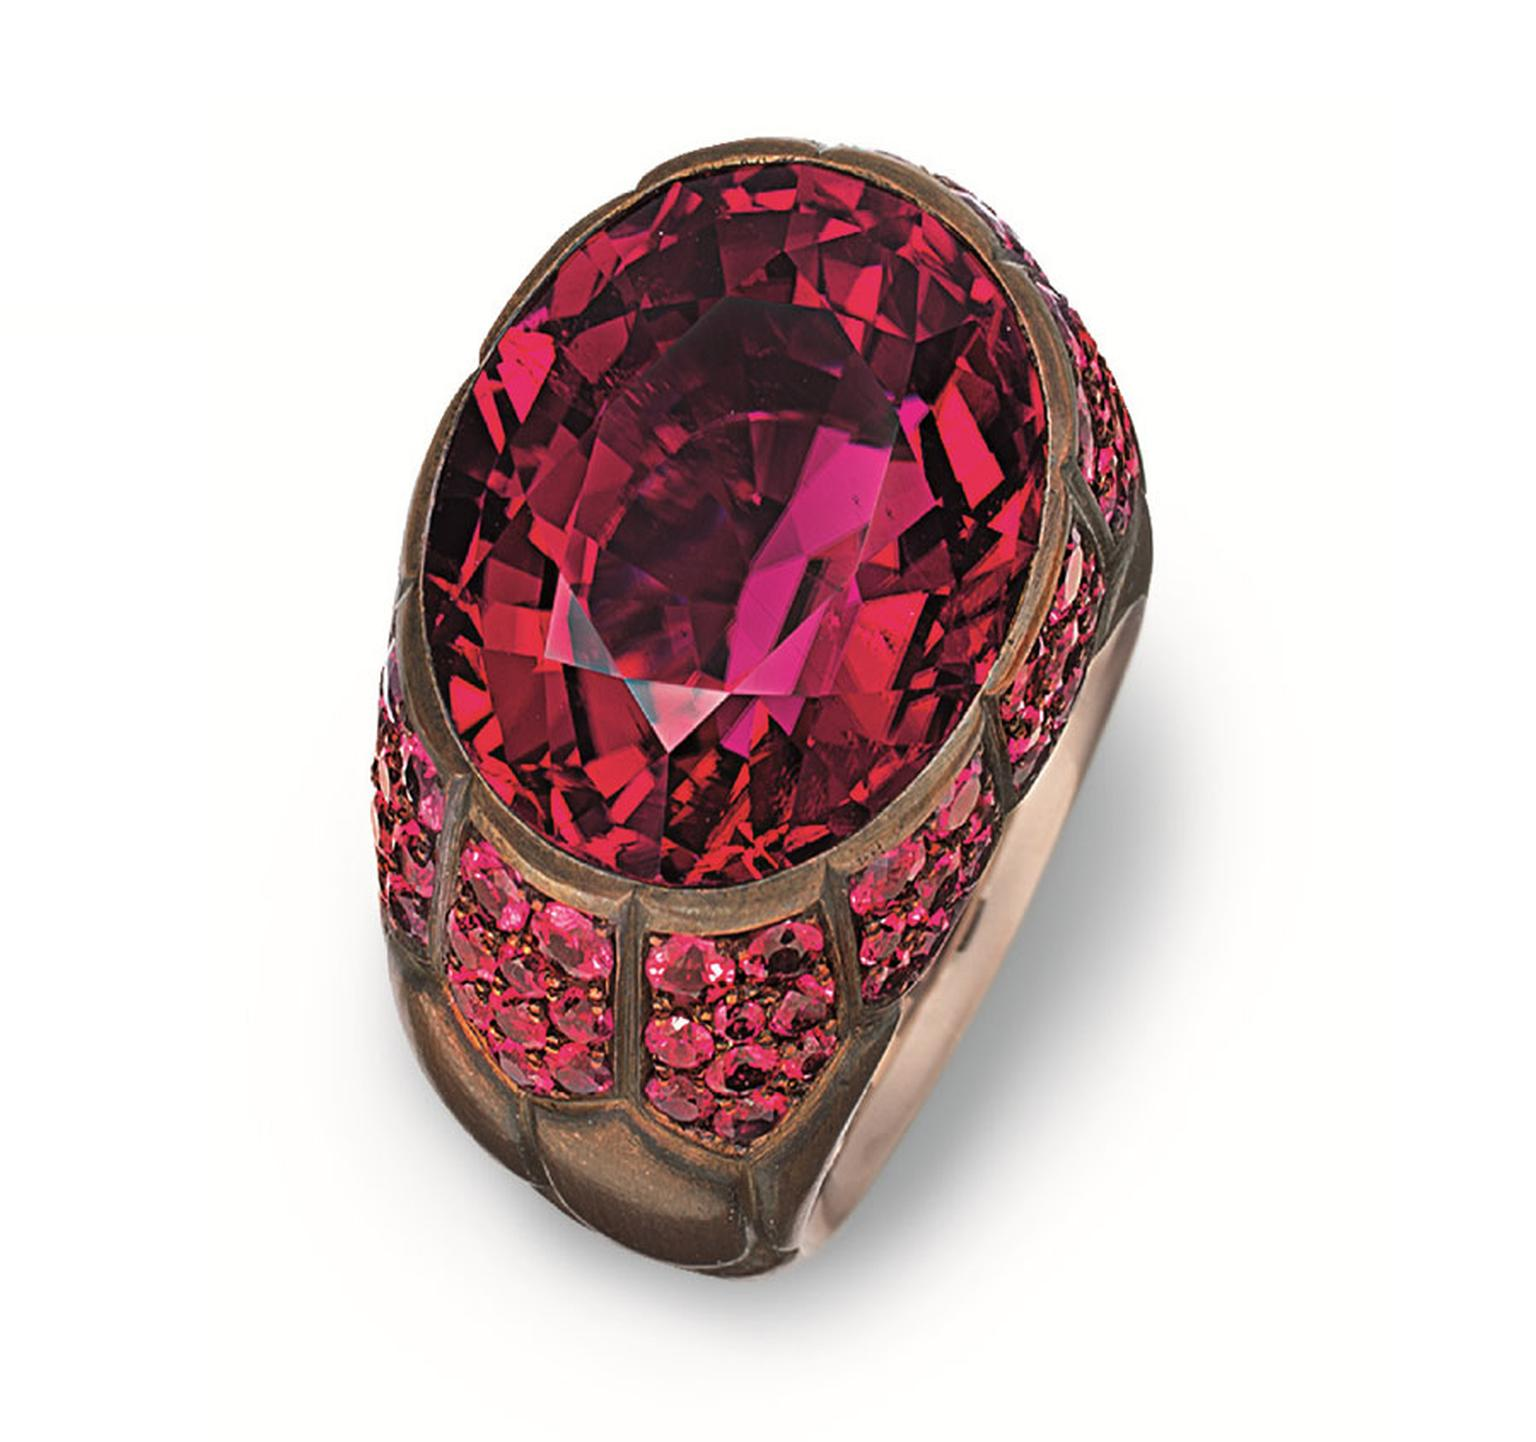 MPL-2013-Hemmerle-Brown-patinated-copper-white-gold-Rubellite-spinels-ring